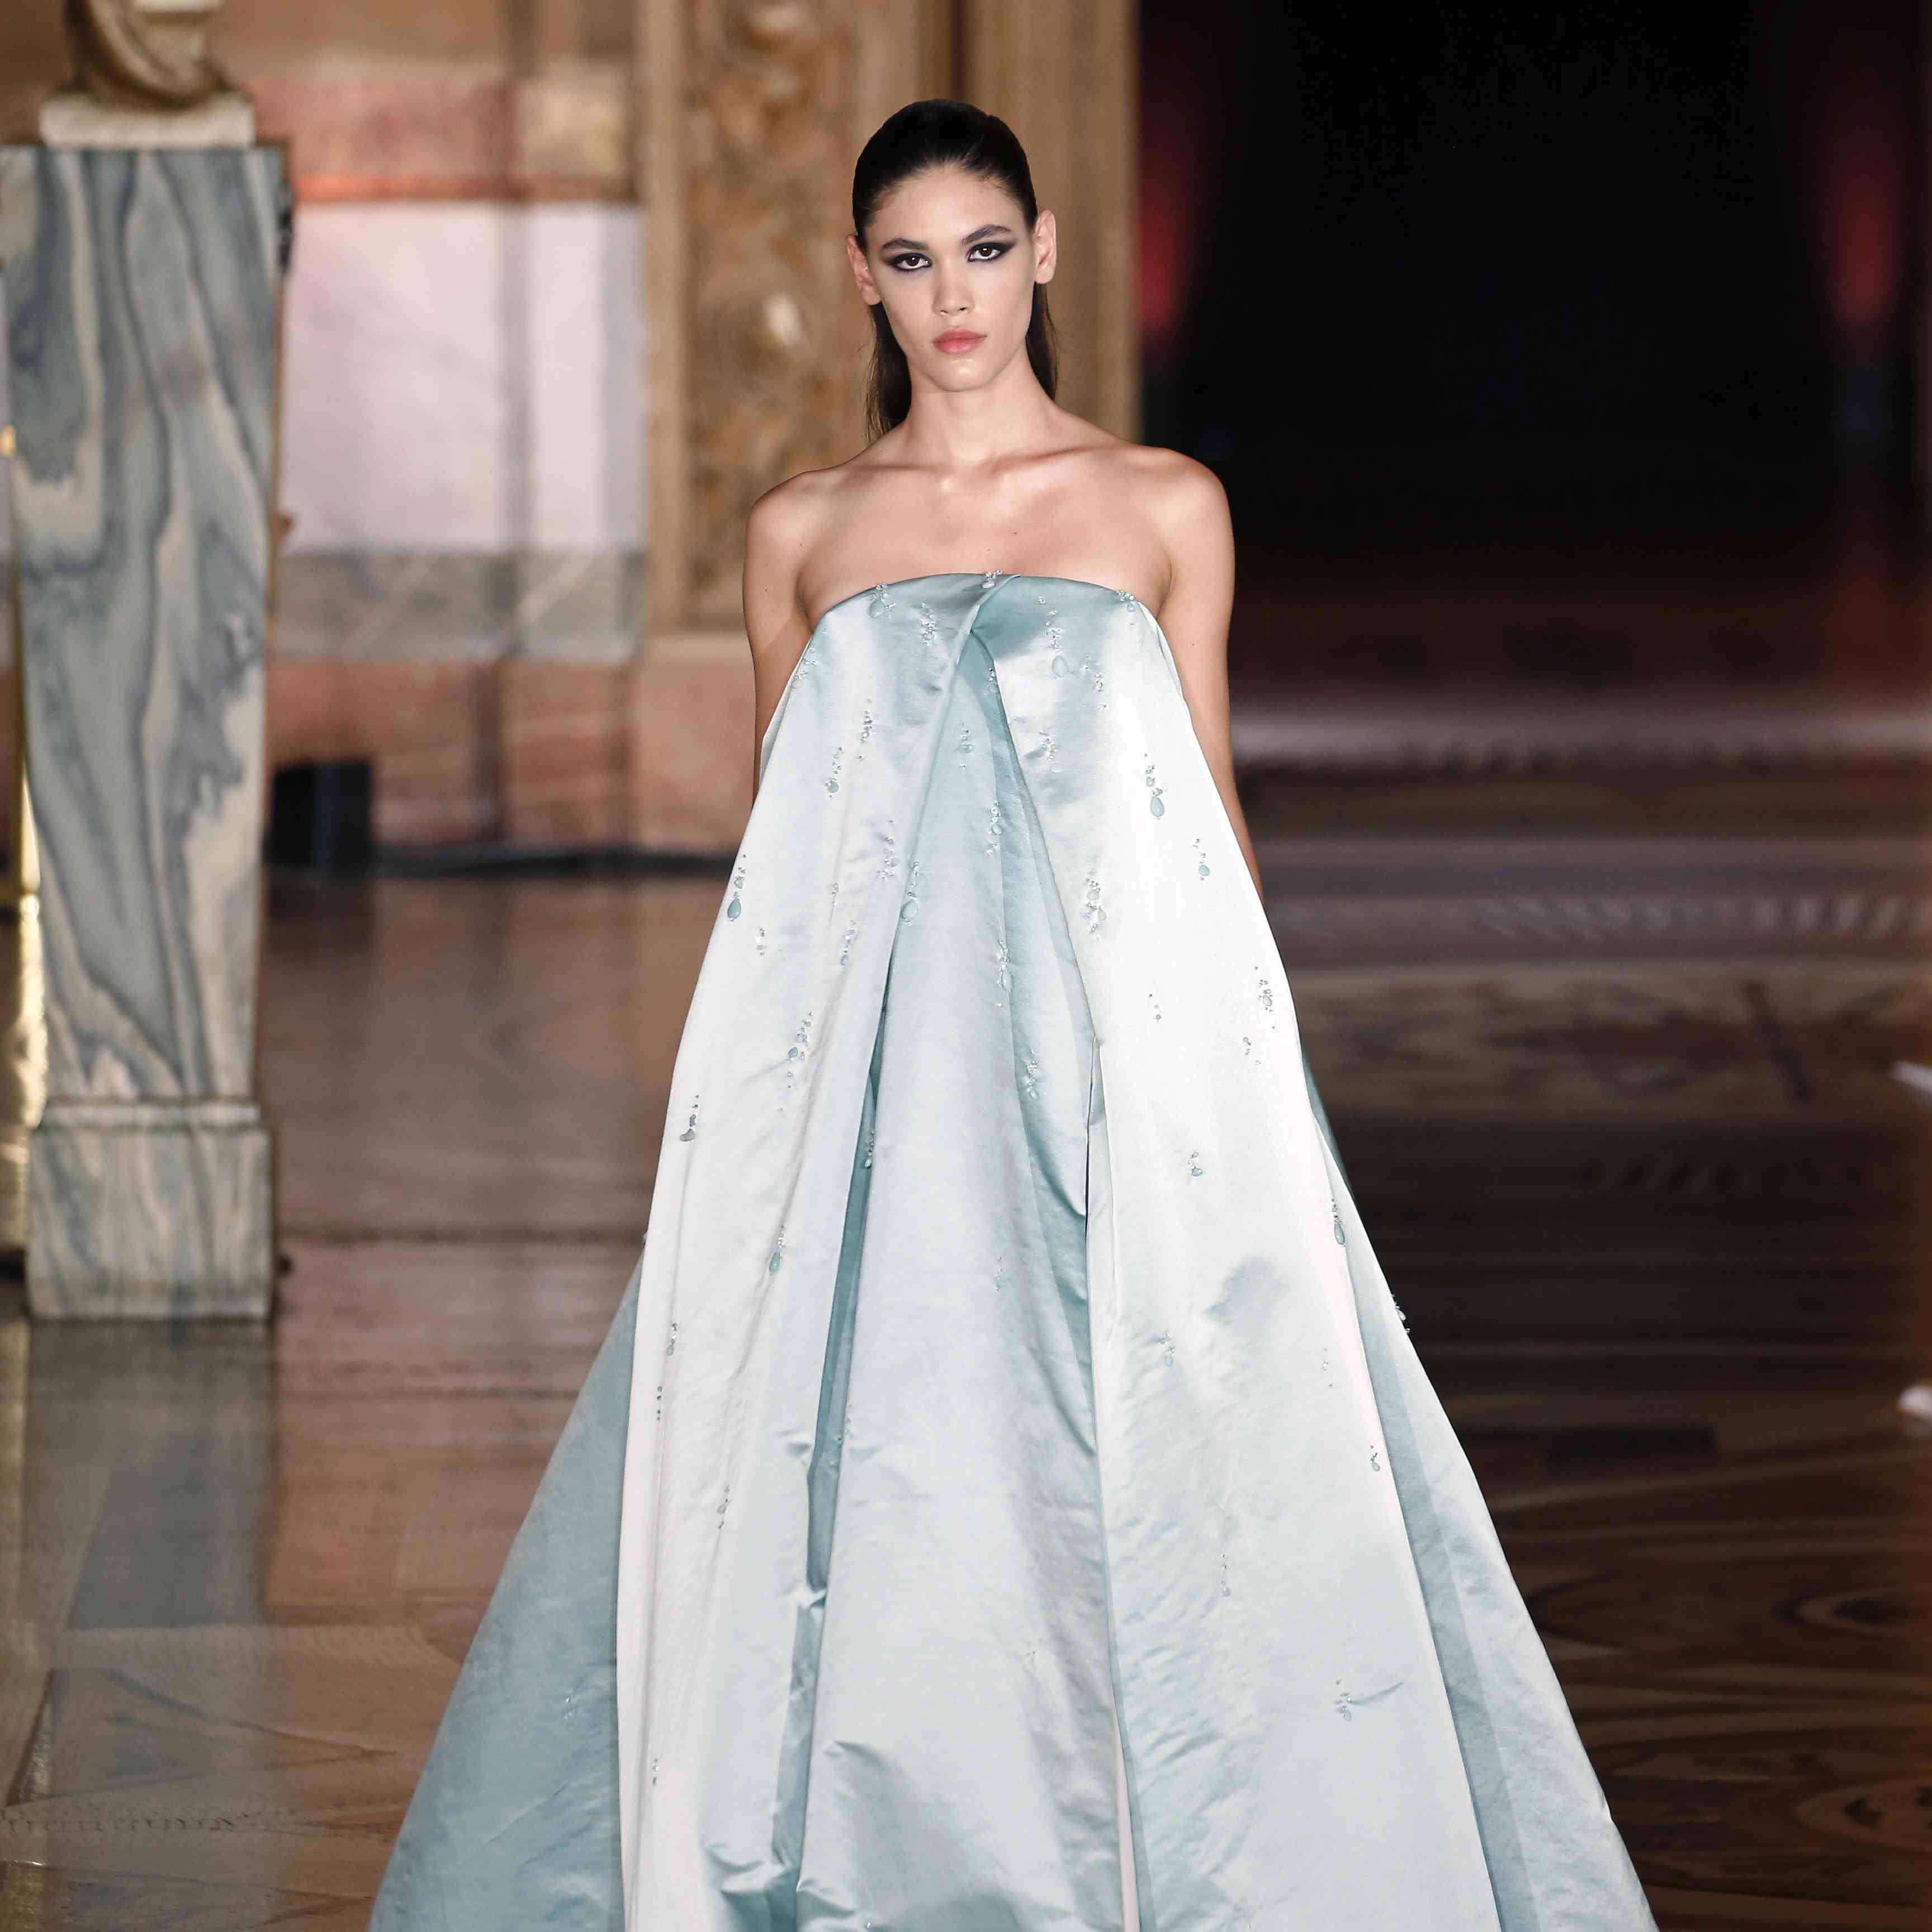 A model walks the runway in light blue, strapless, satin gown